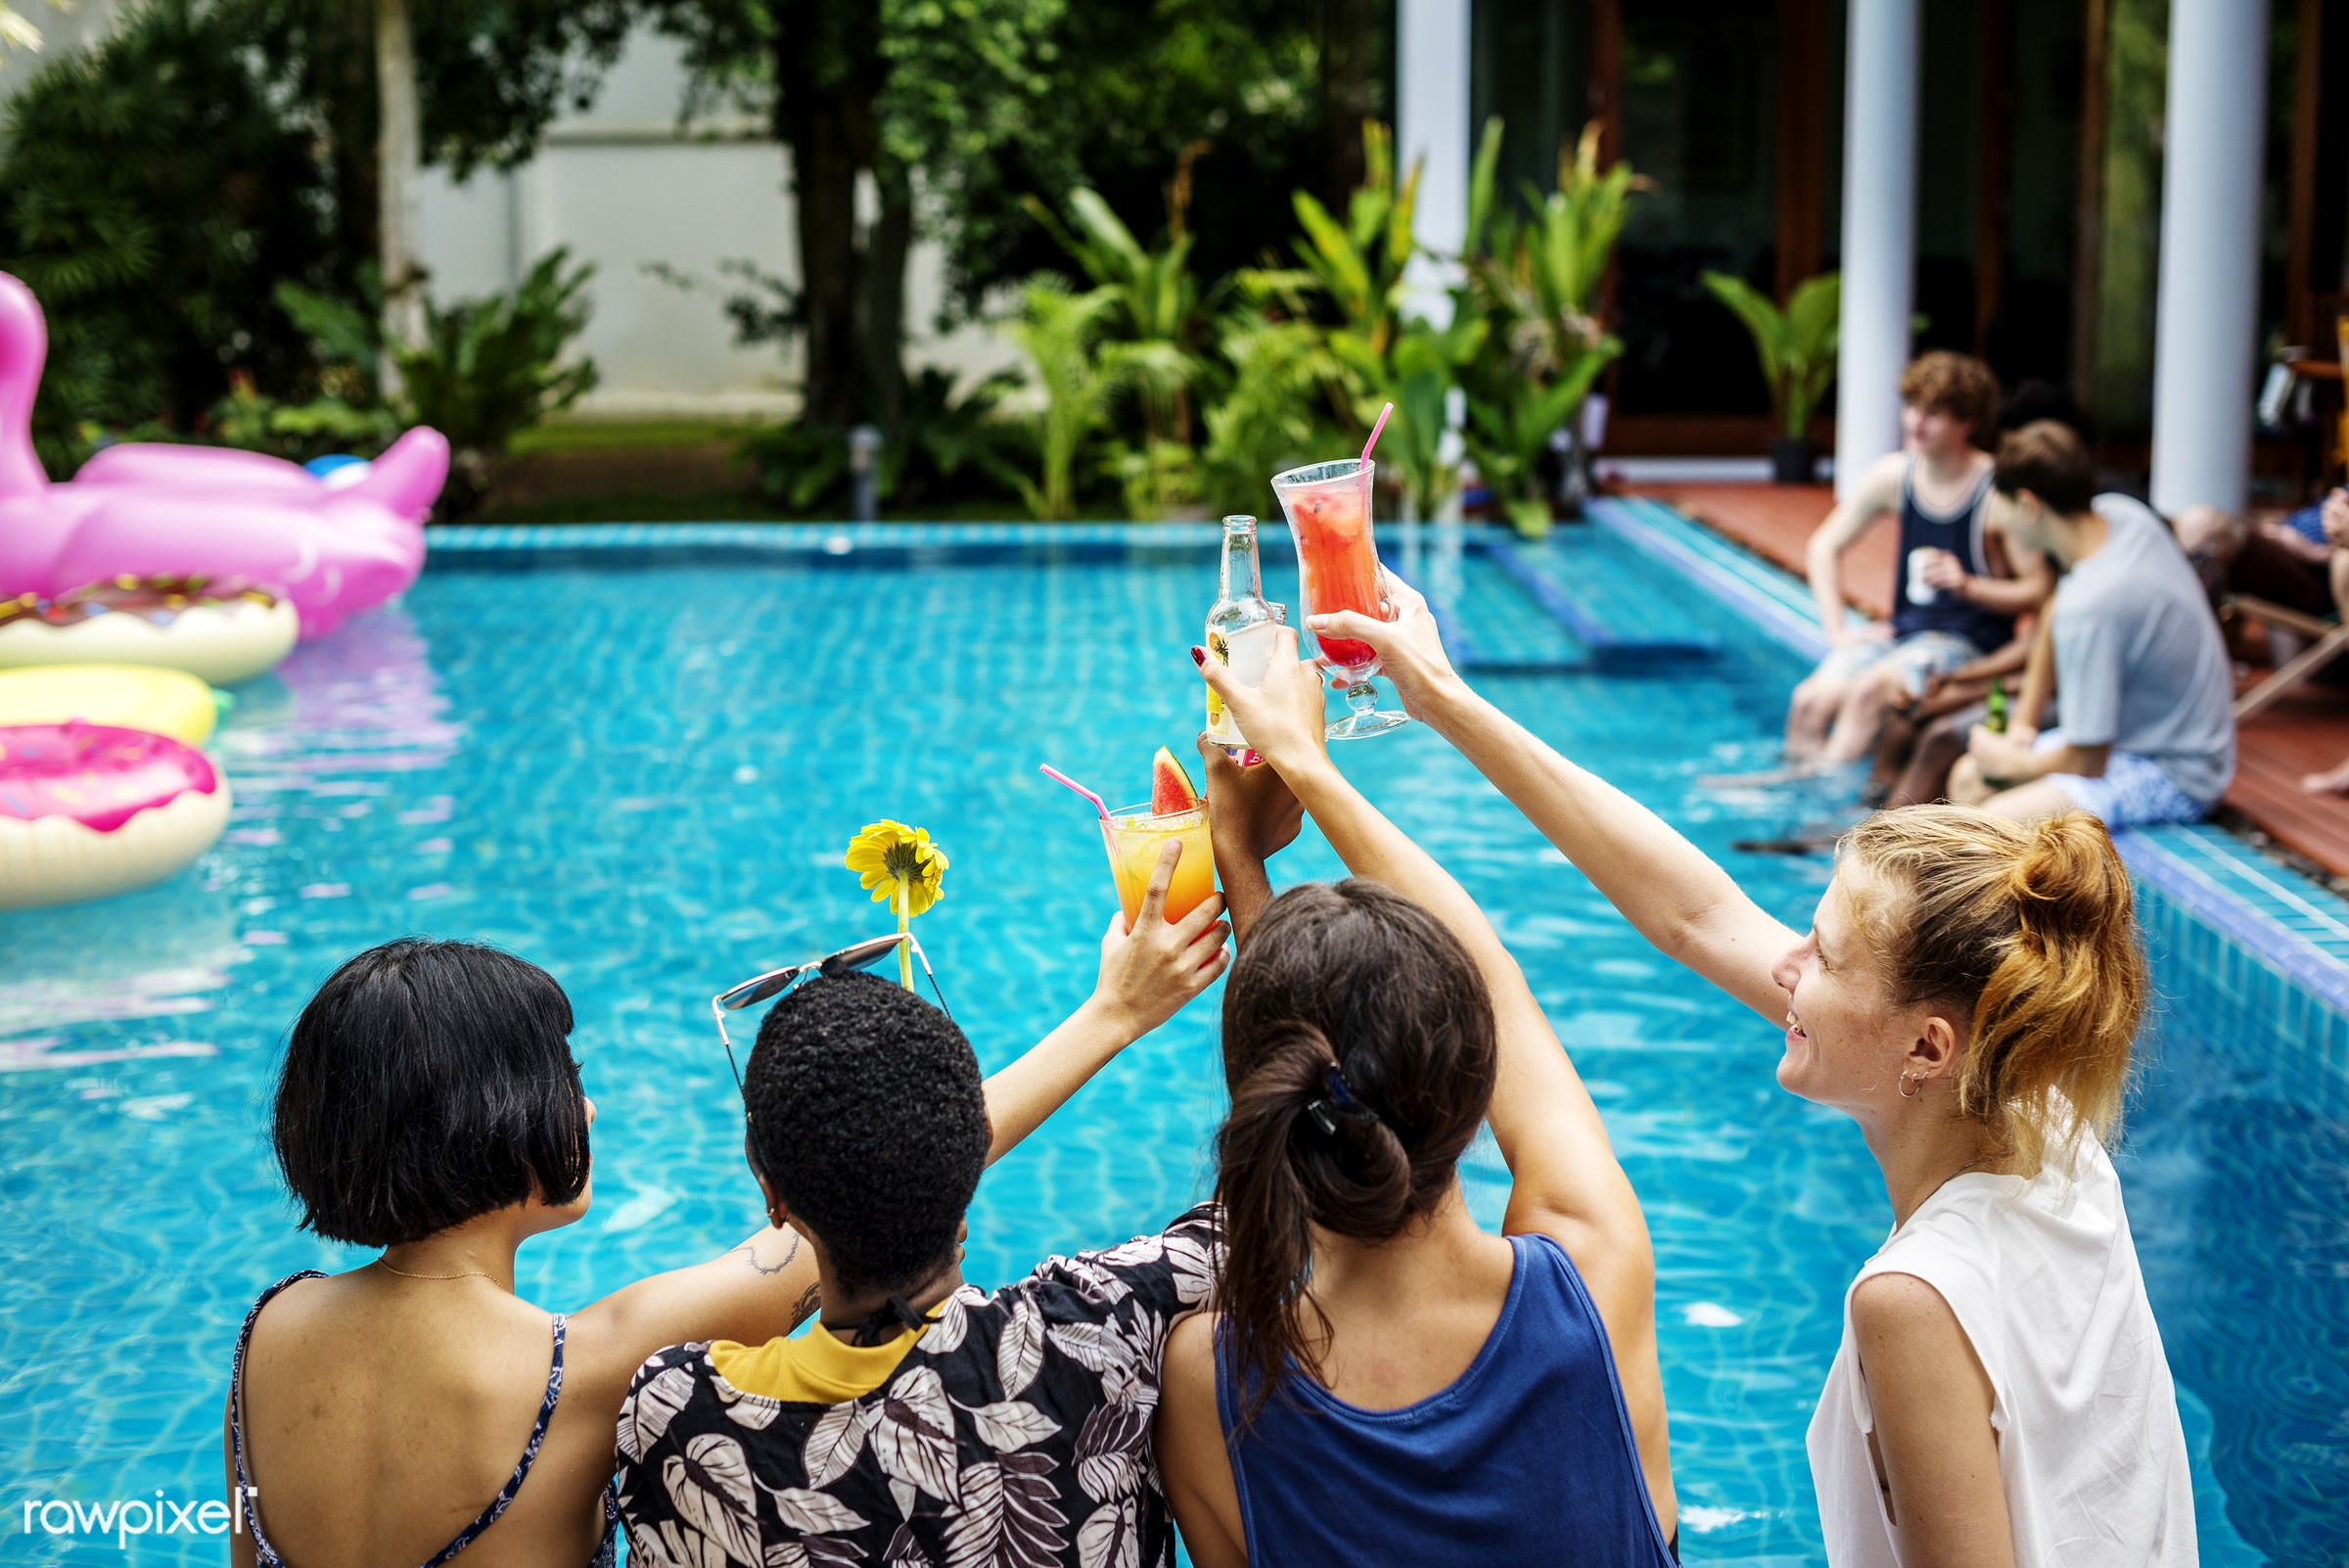 buoy, diverse, tropical, socialize, travel, party, drinks, swimming, asian, teenage, caucasian, friends, pool, juice, casual...